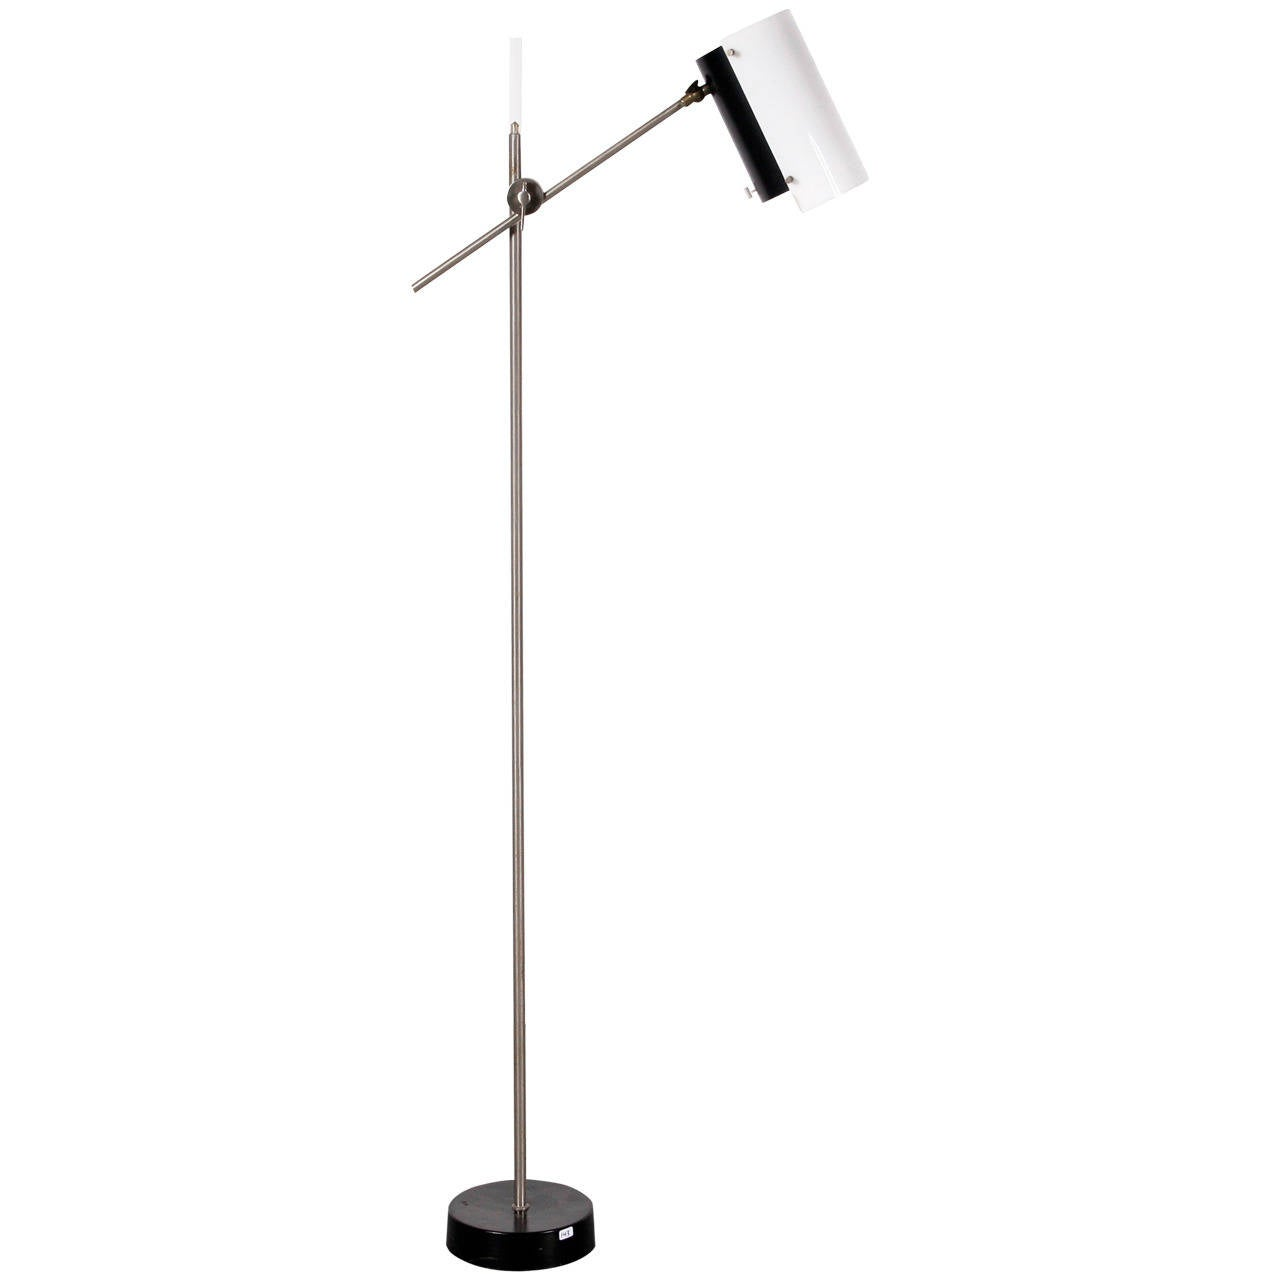 Philips floor lamp circa 1950 for sale at 1stdibs philips floor lamp circa 1950 for sale aloadofball Gallery